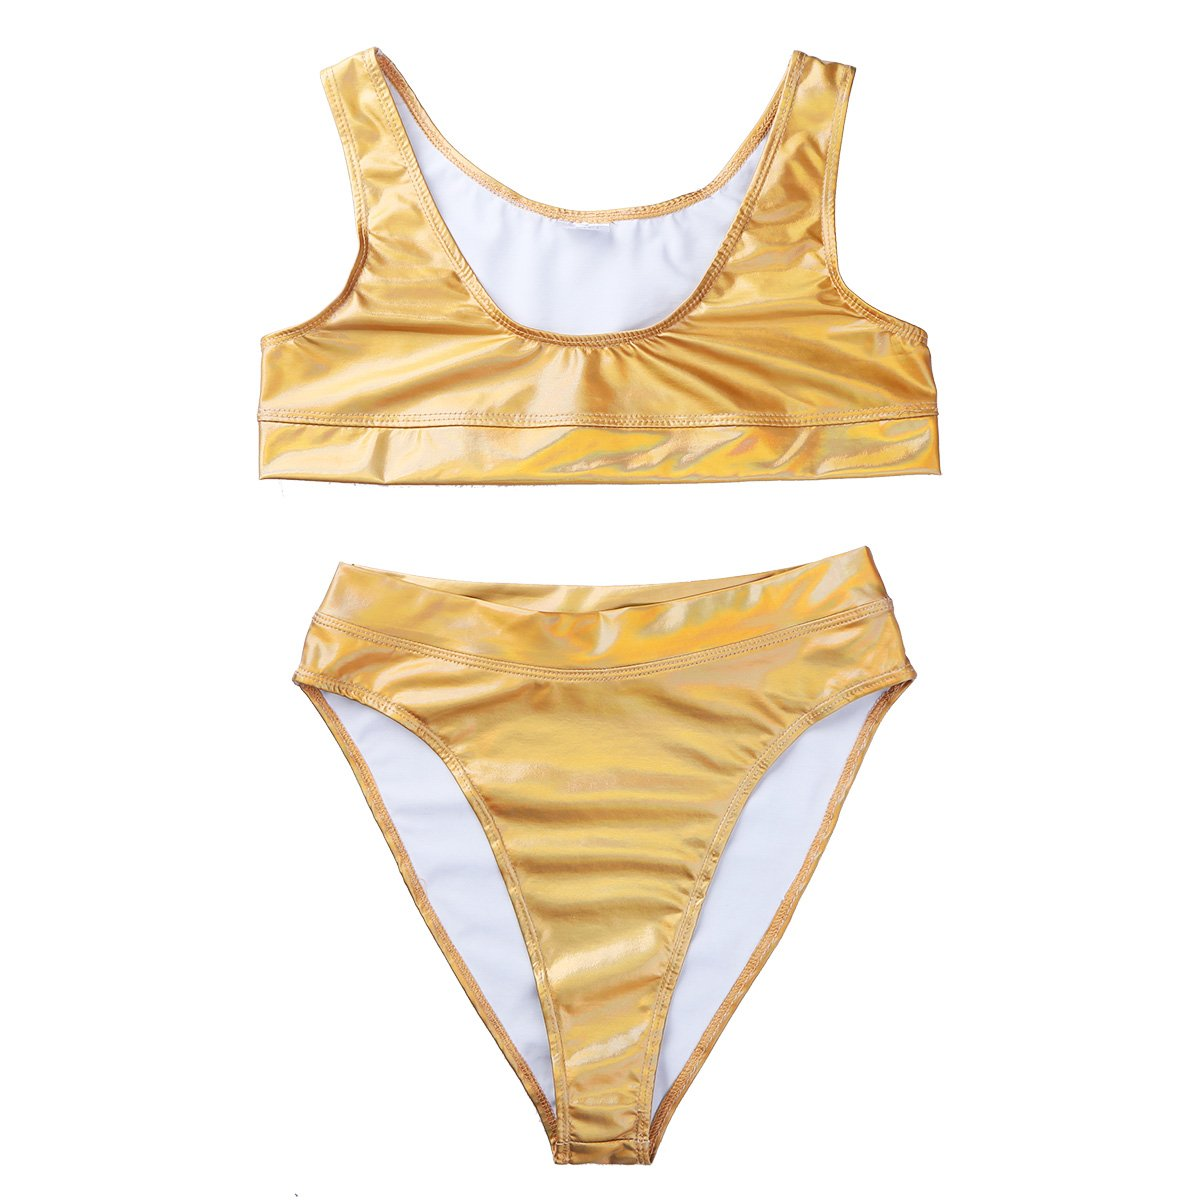 3386d0ef76f9a6 Amazon.com  Alvivi 2Pcs Women Shiny Metallic Patent Leather Bikini Crop Top  with High Waist Thong Set Swimsuit  Clothing